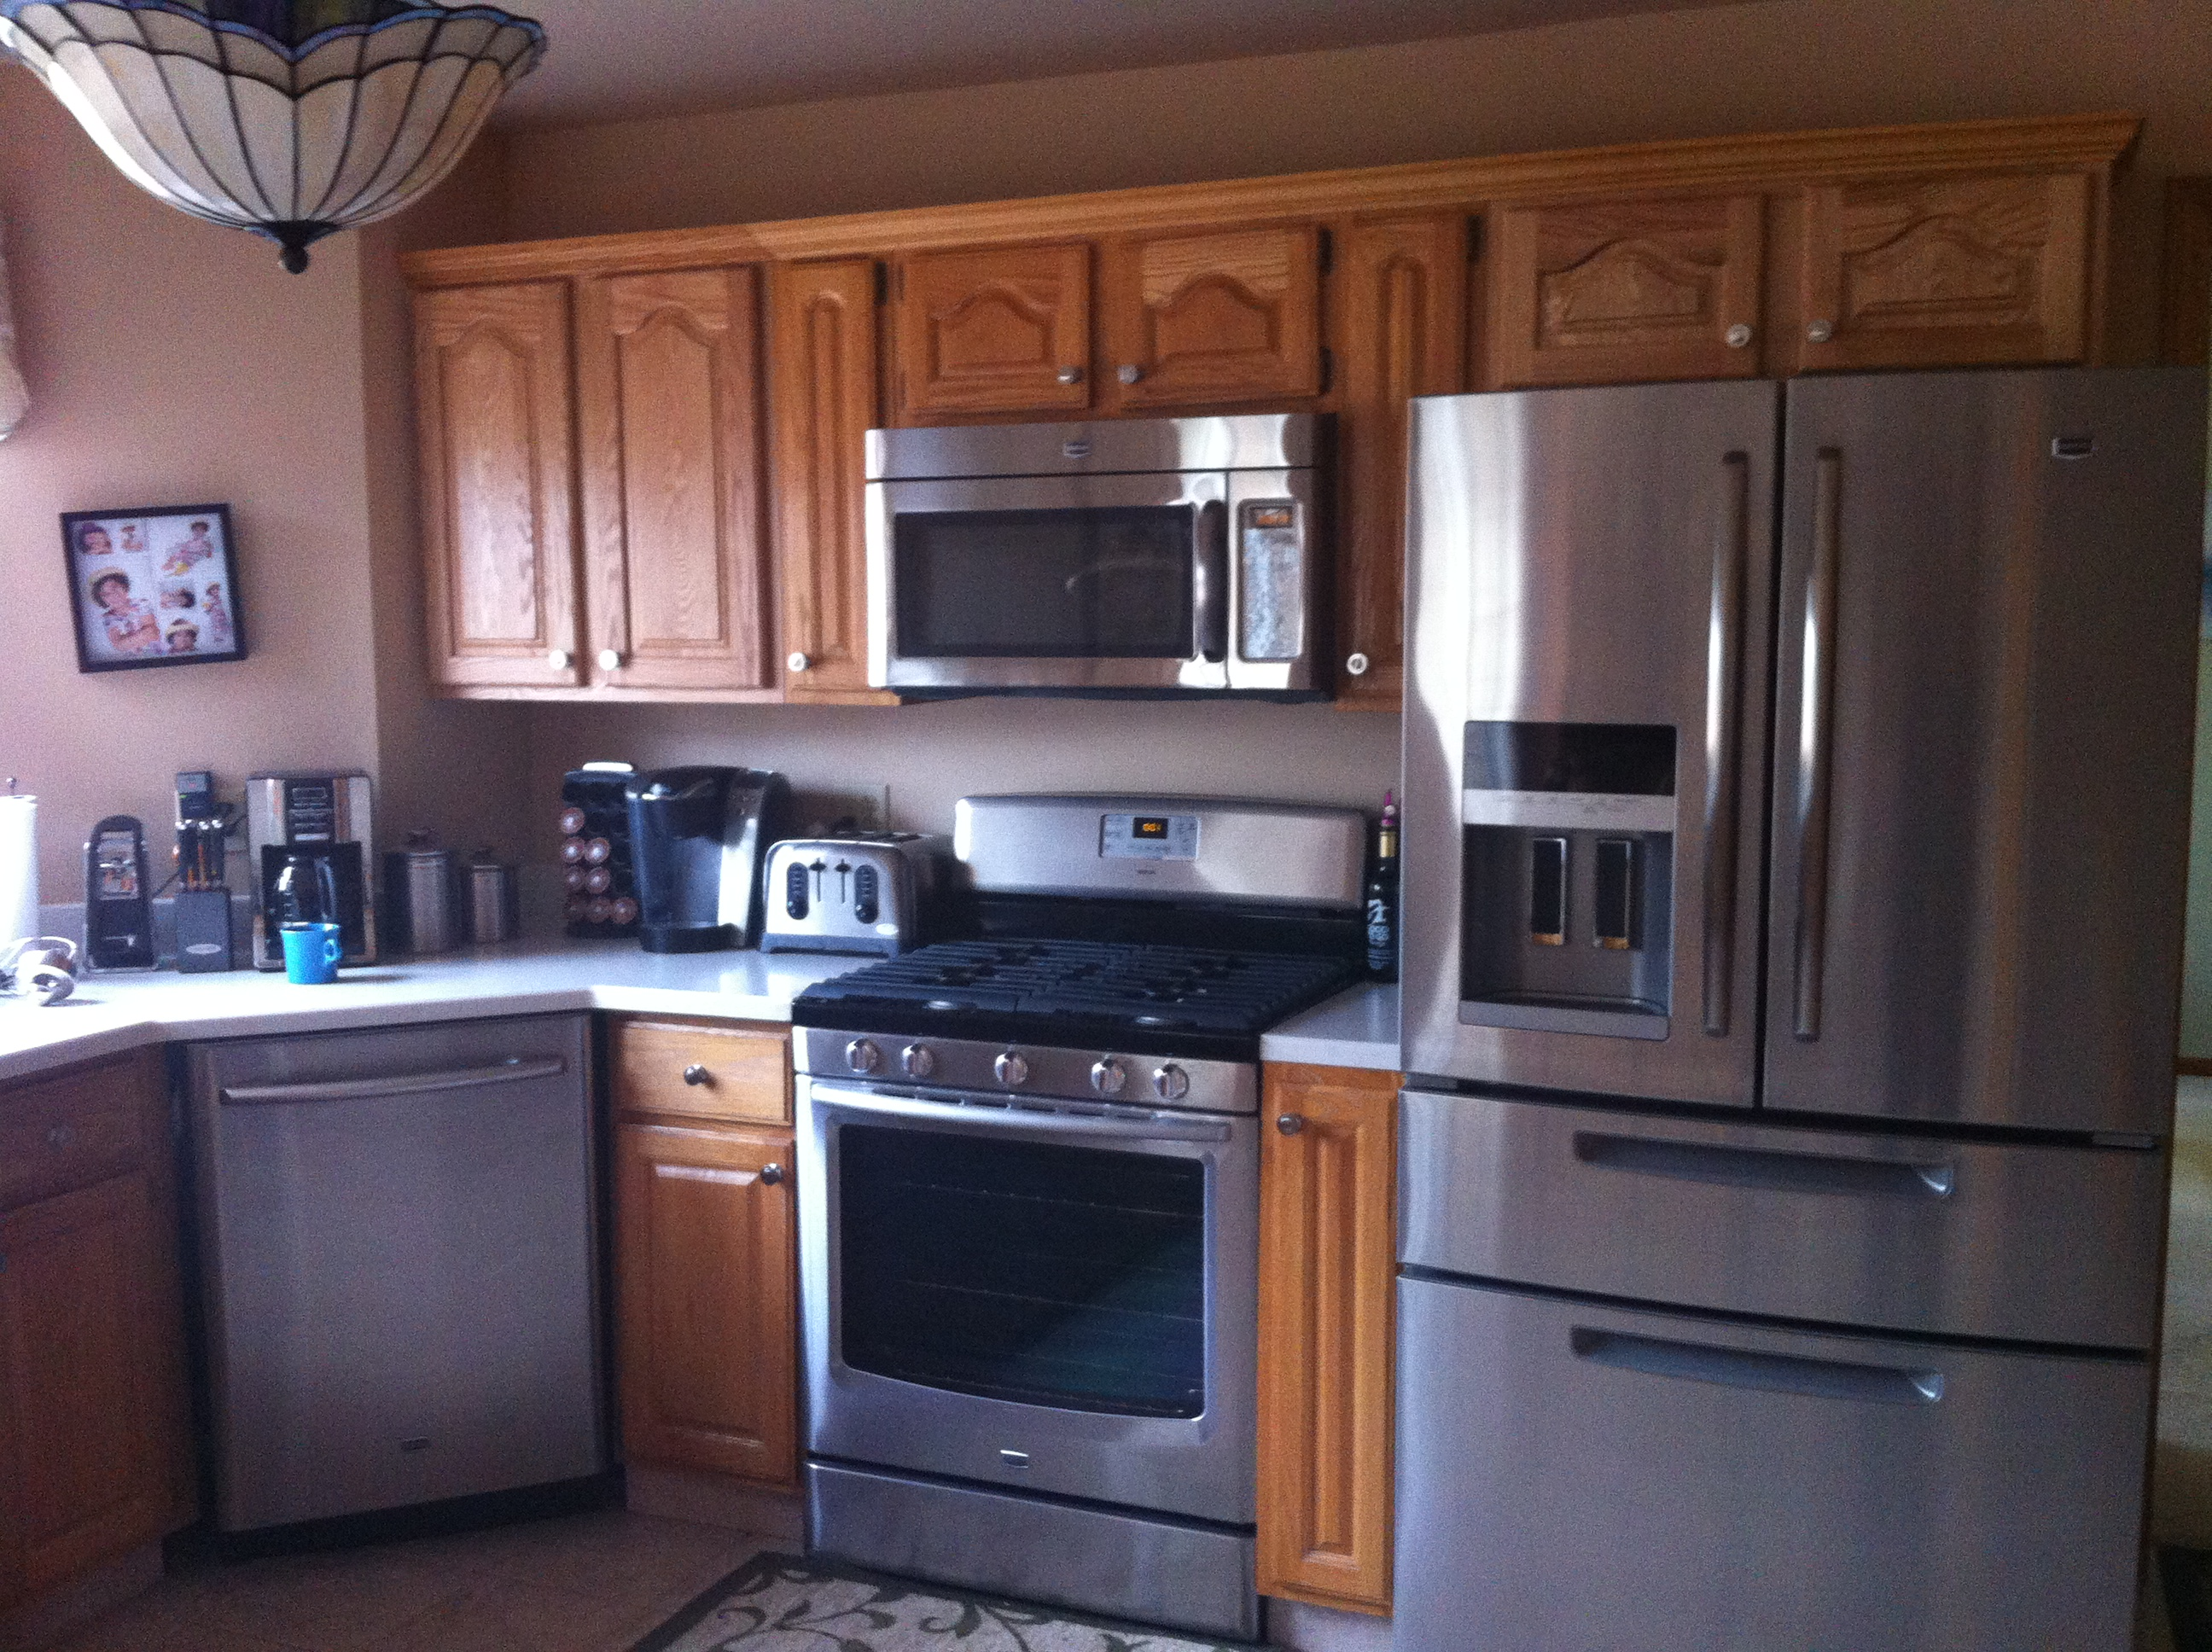 Appliance Update - One Year Later and Loving My Maytag Kitchen ...